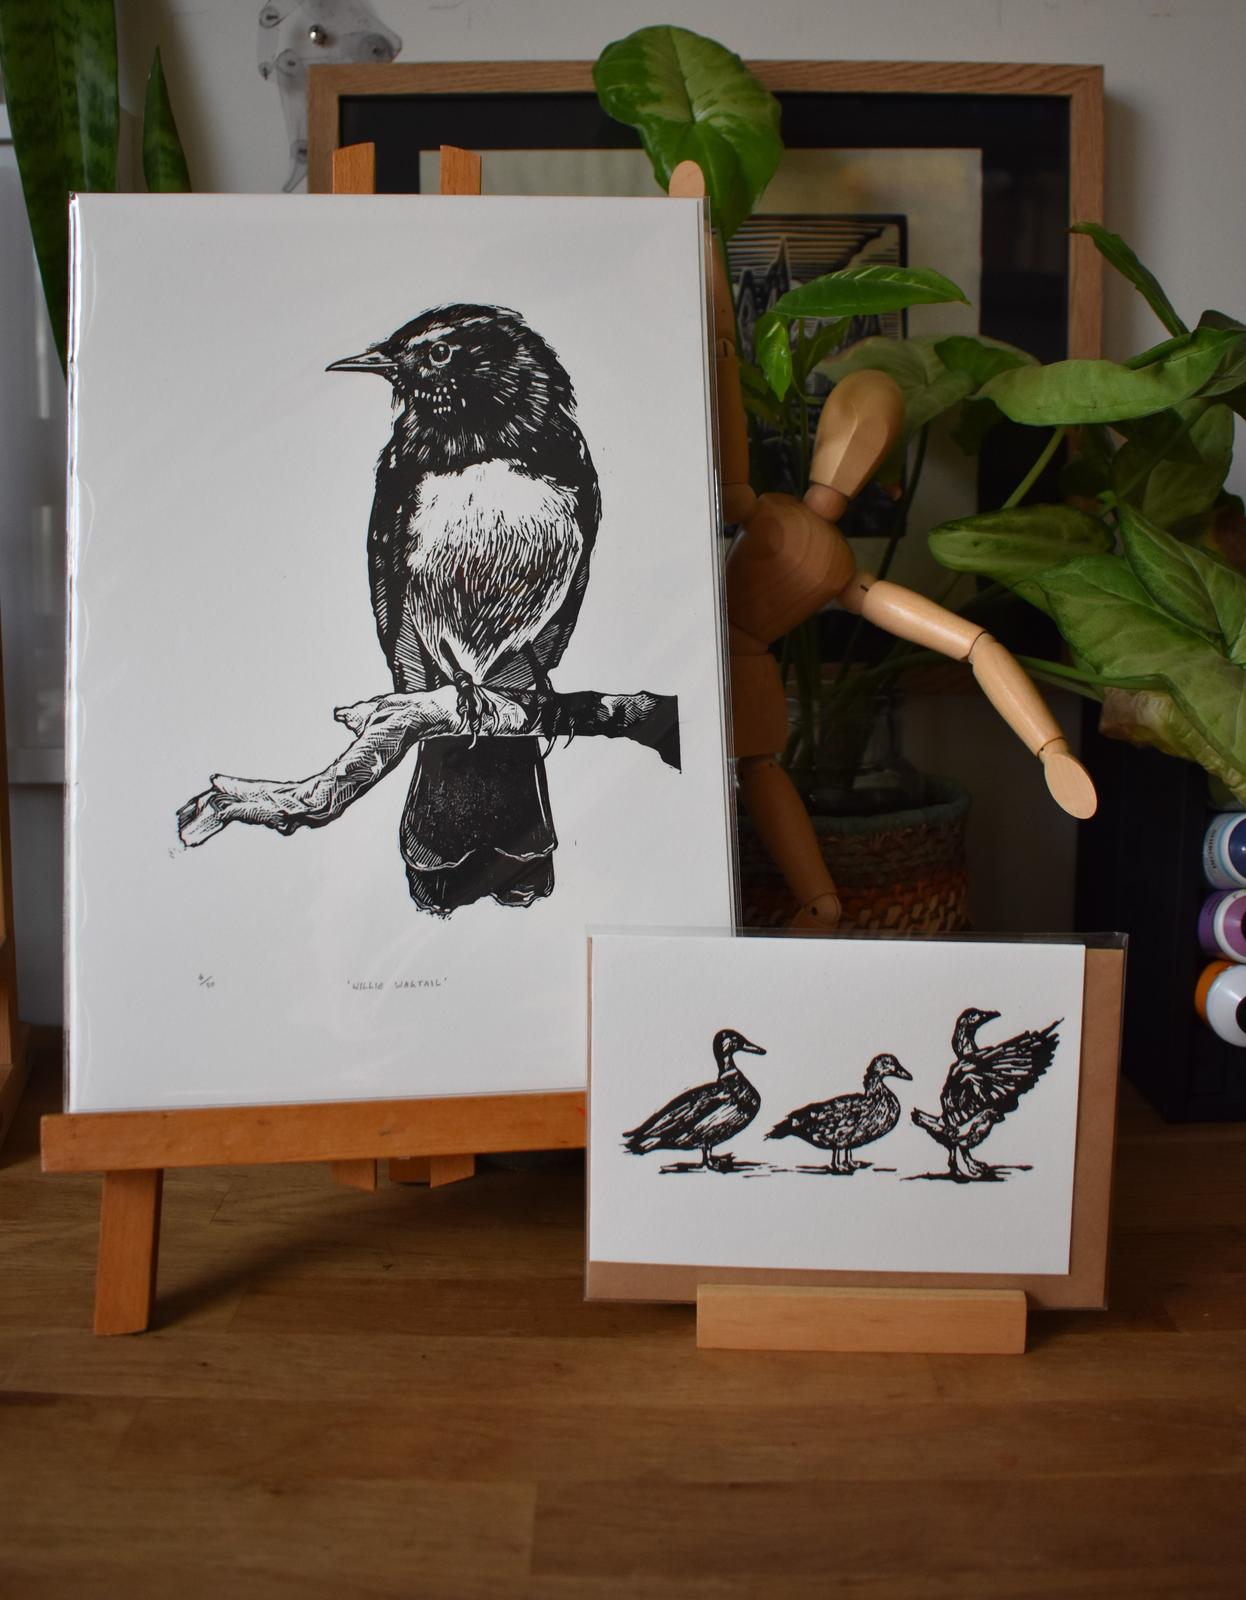 'Willie Wagtail' Relief Print & 'Duck, Duck, Goose' Card